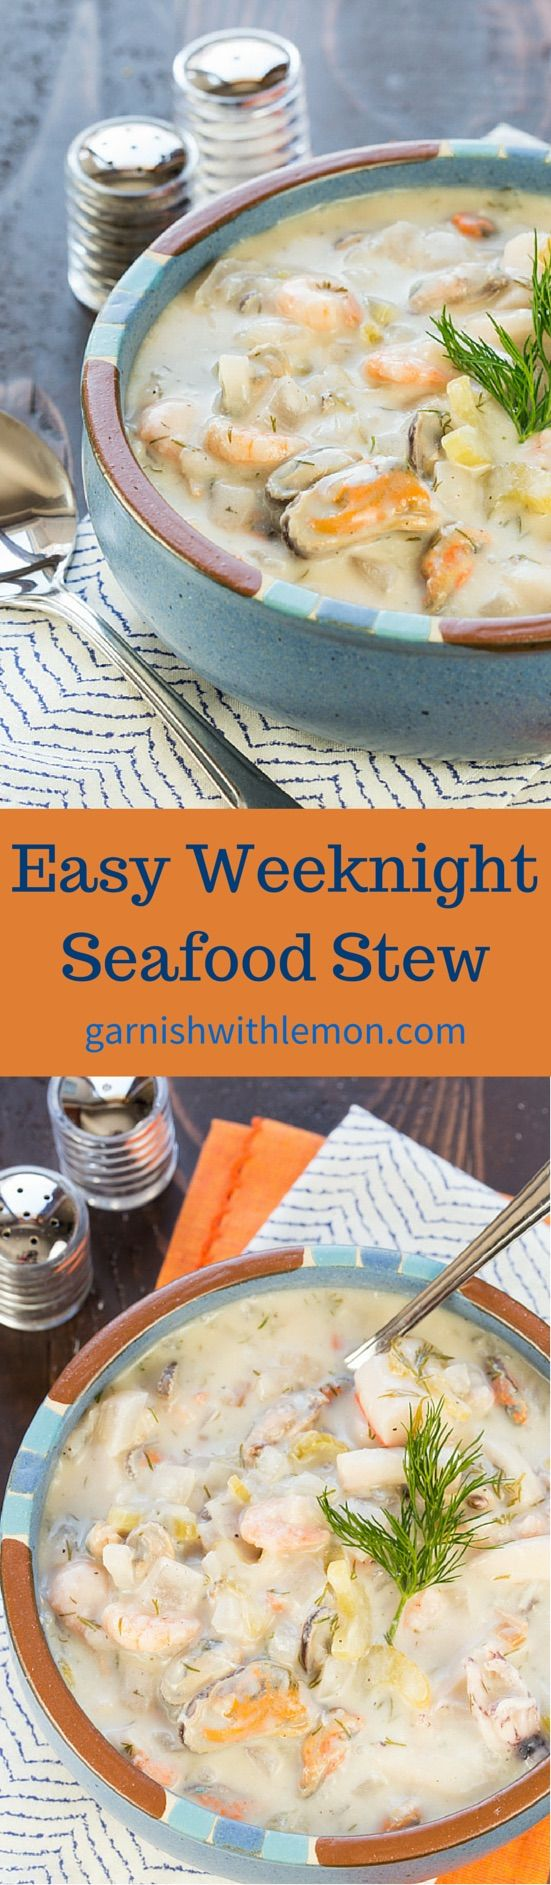 Easy seafood stew recipes